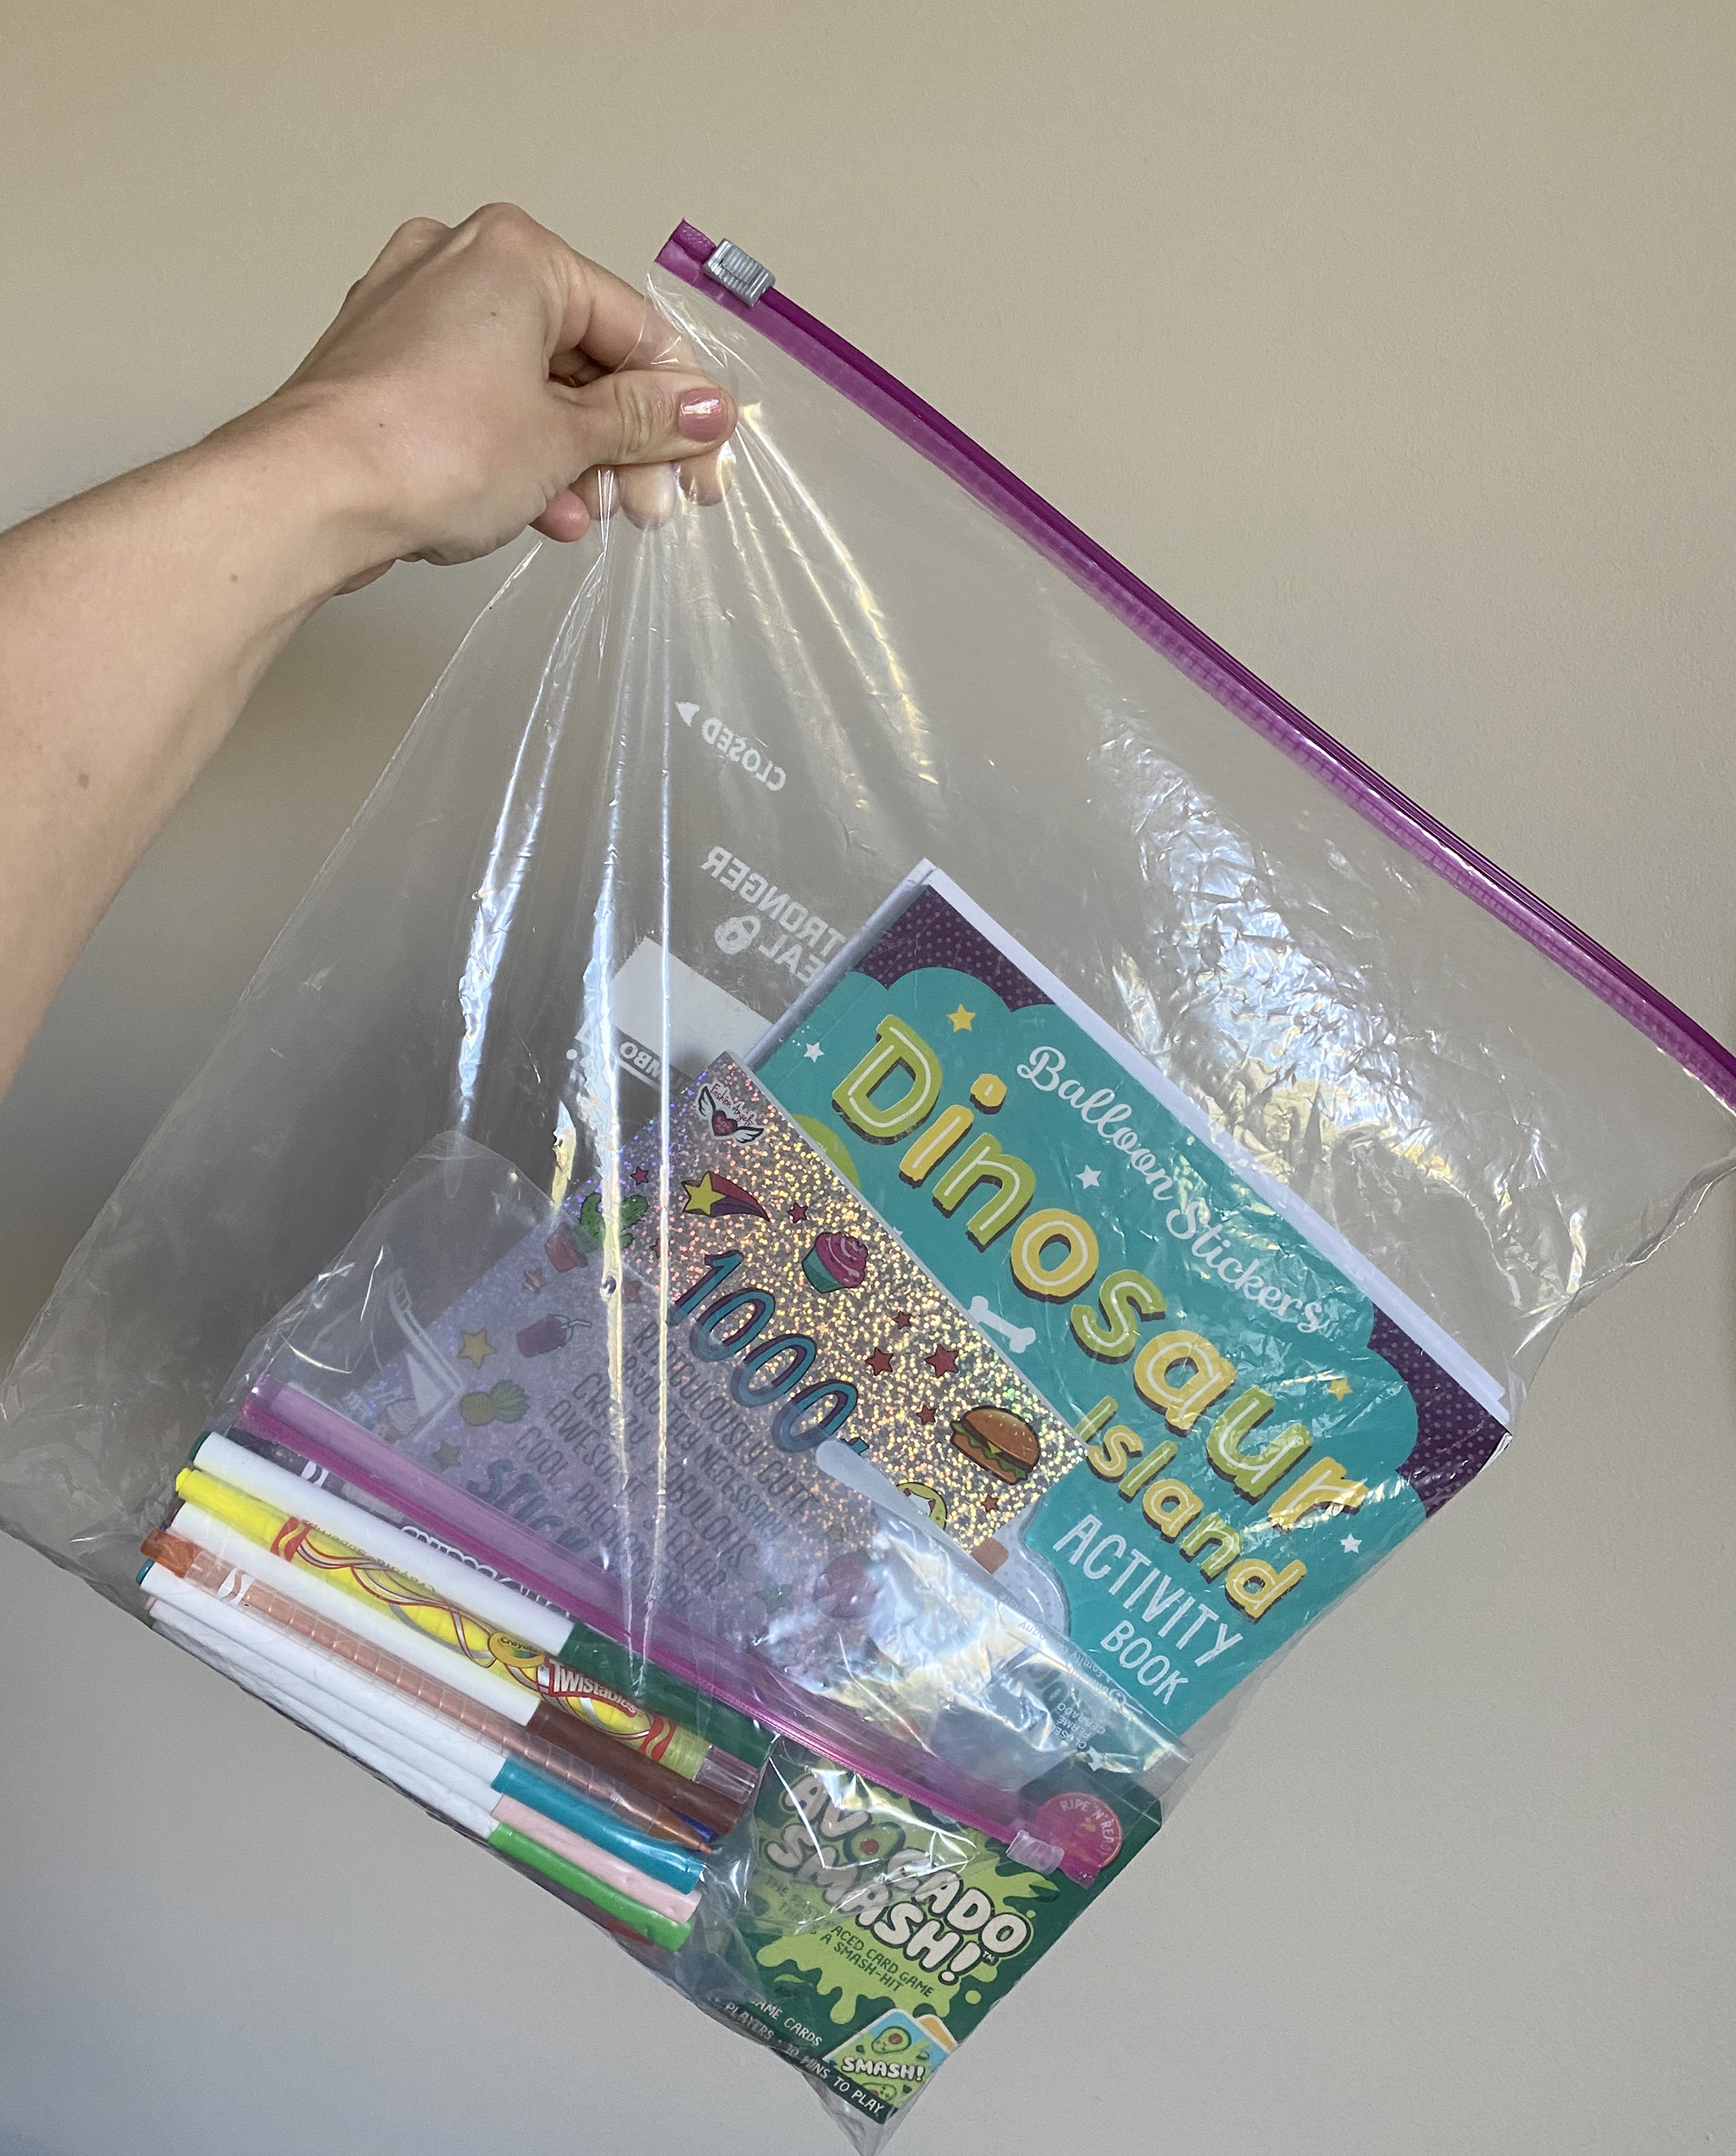 A fancy ziploc bag is usually my go-to to bring all the goodies to keep then entertained!